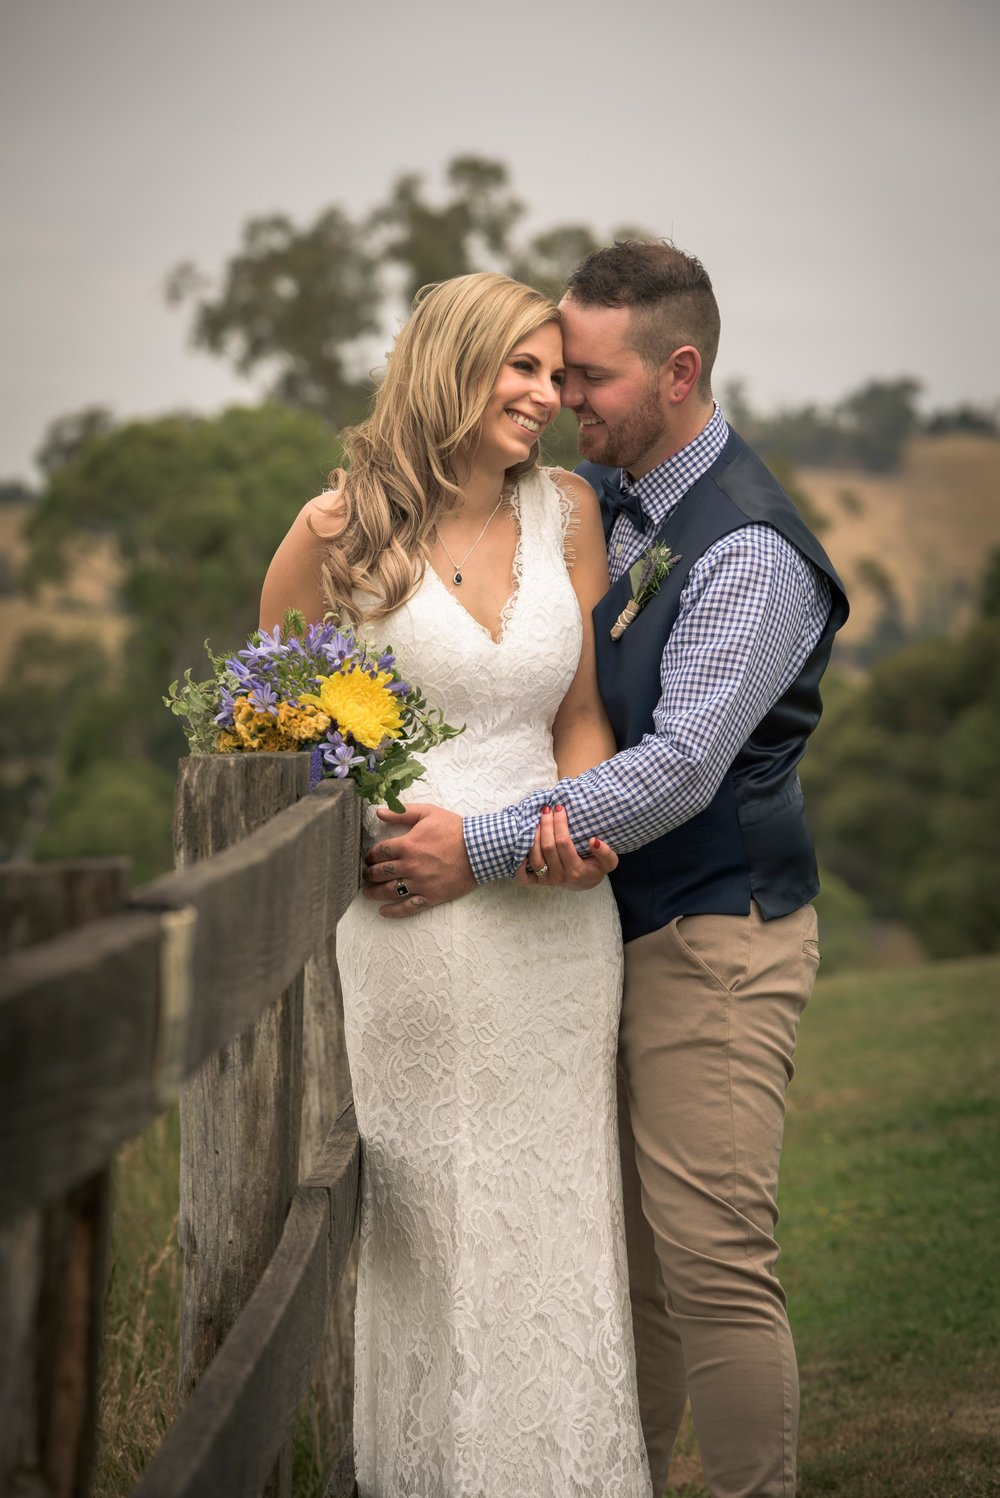 Mark Carniato Photography - Wedding Photography Melbourne (70).jpg